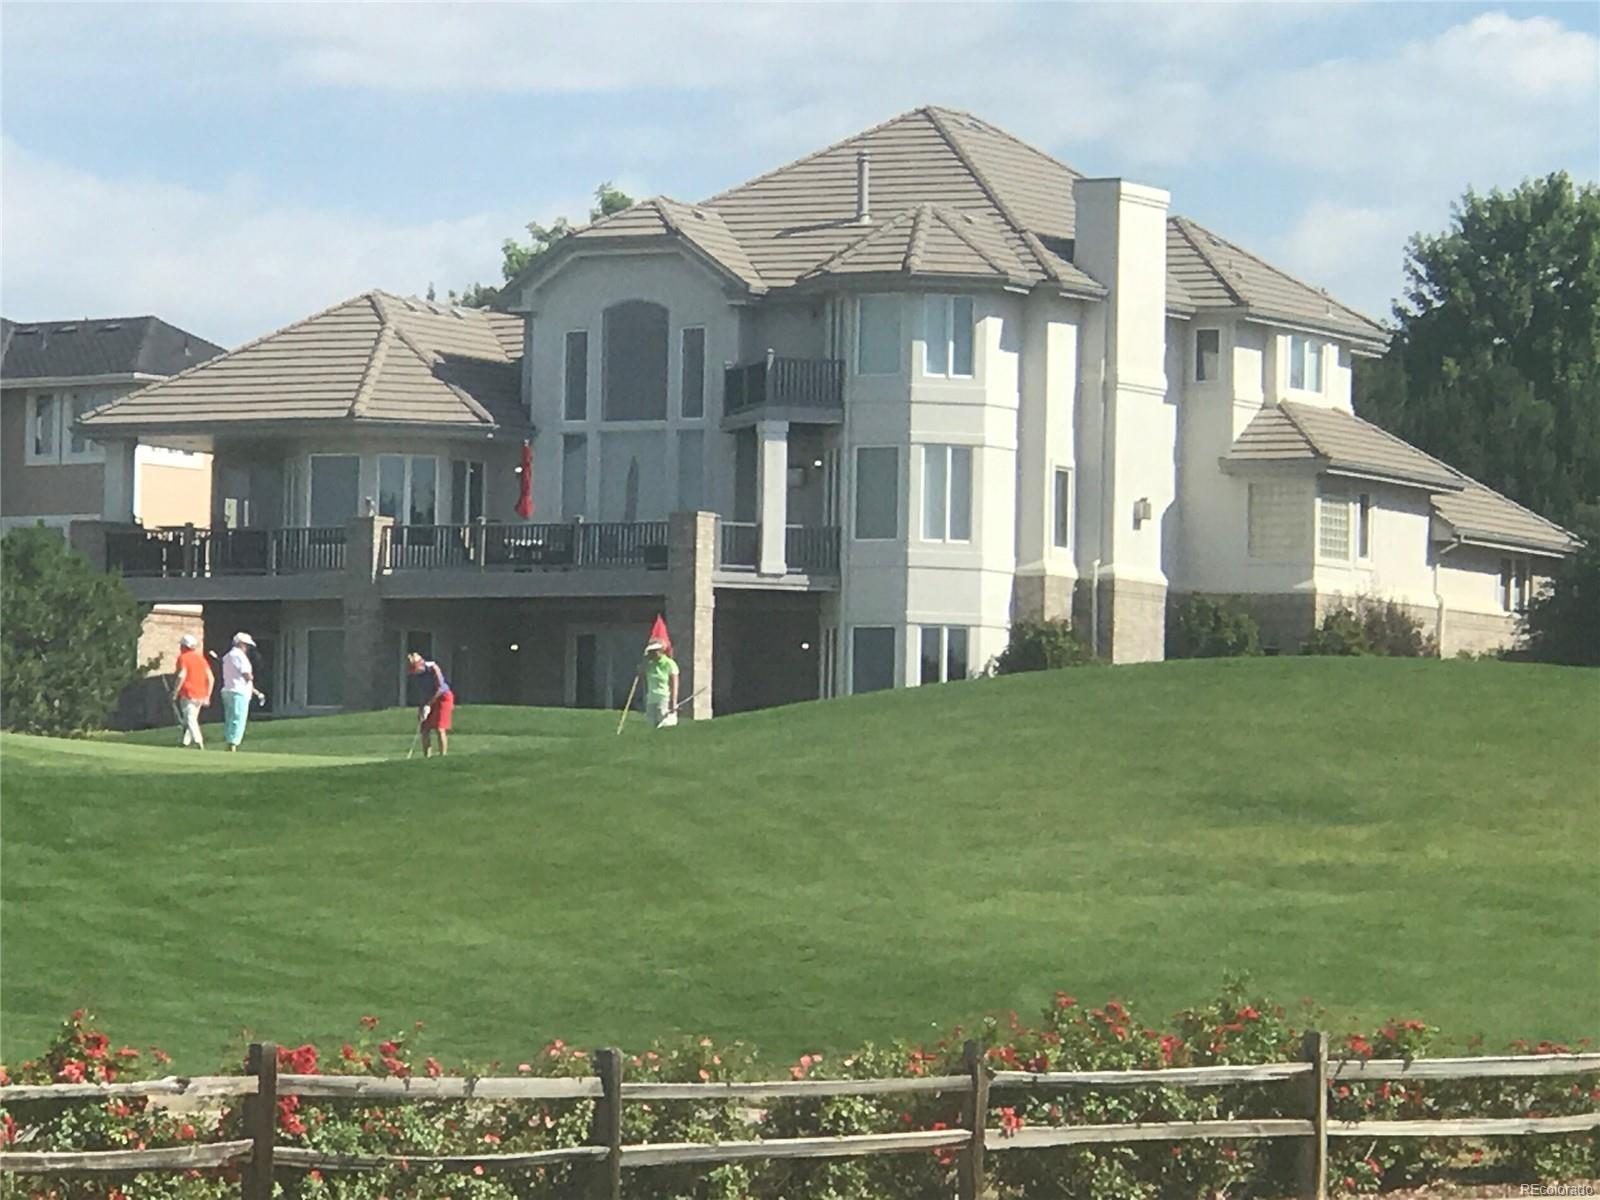 Backyard from golf course